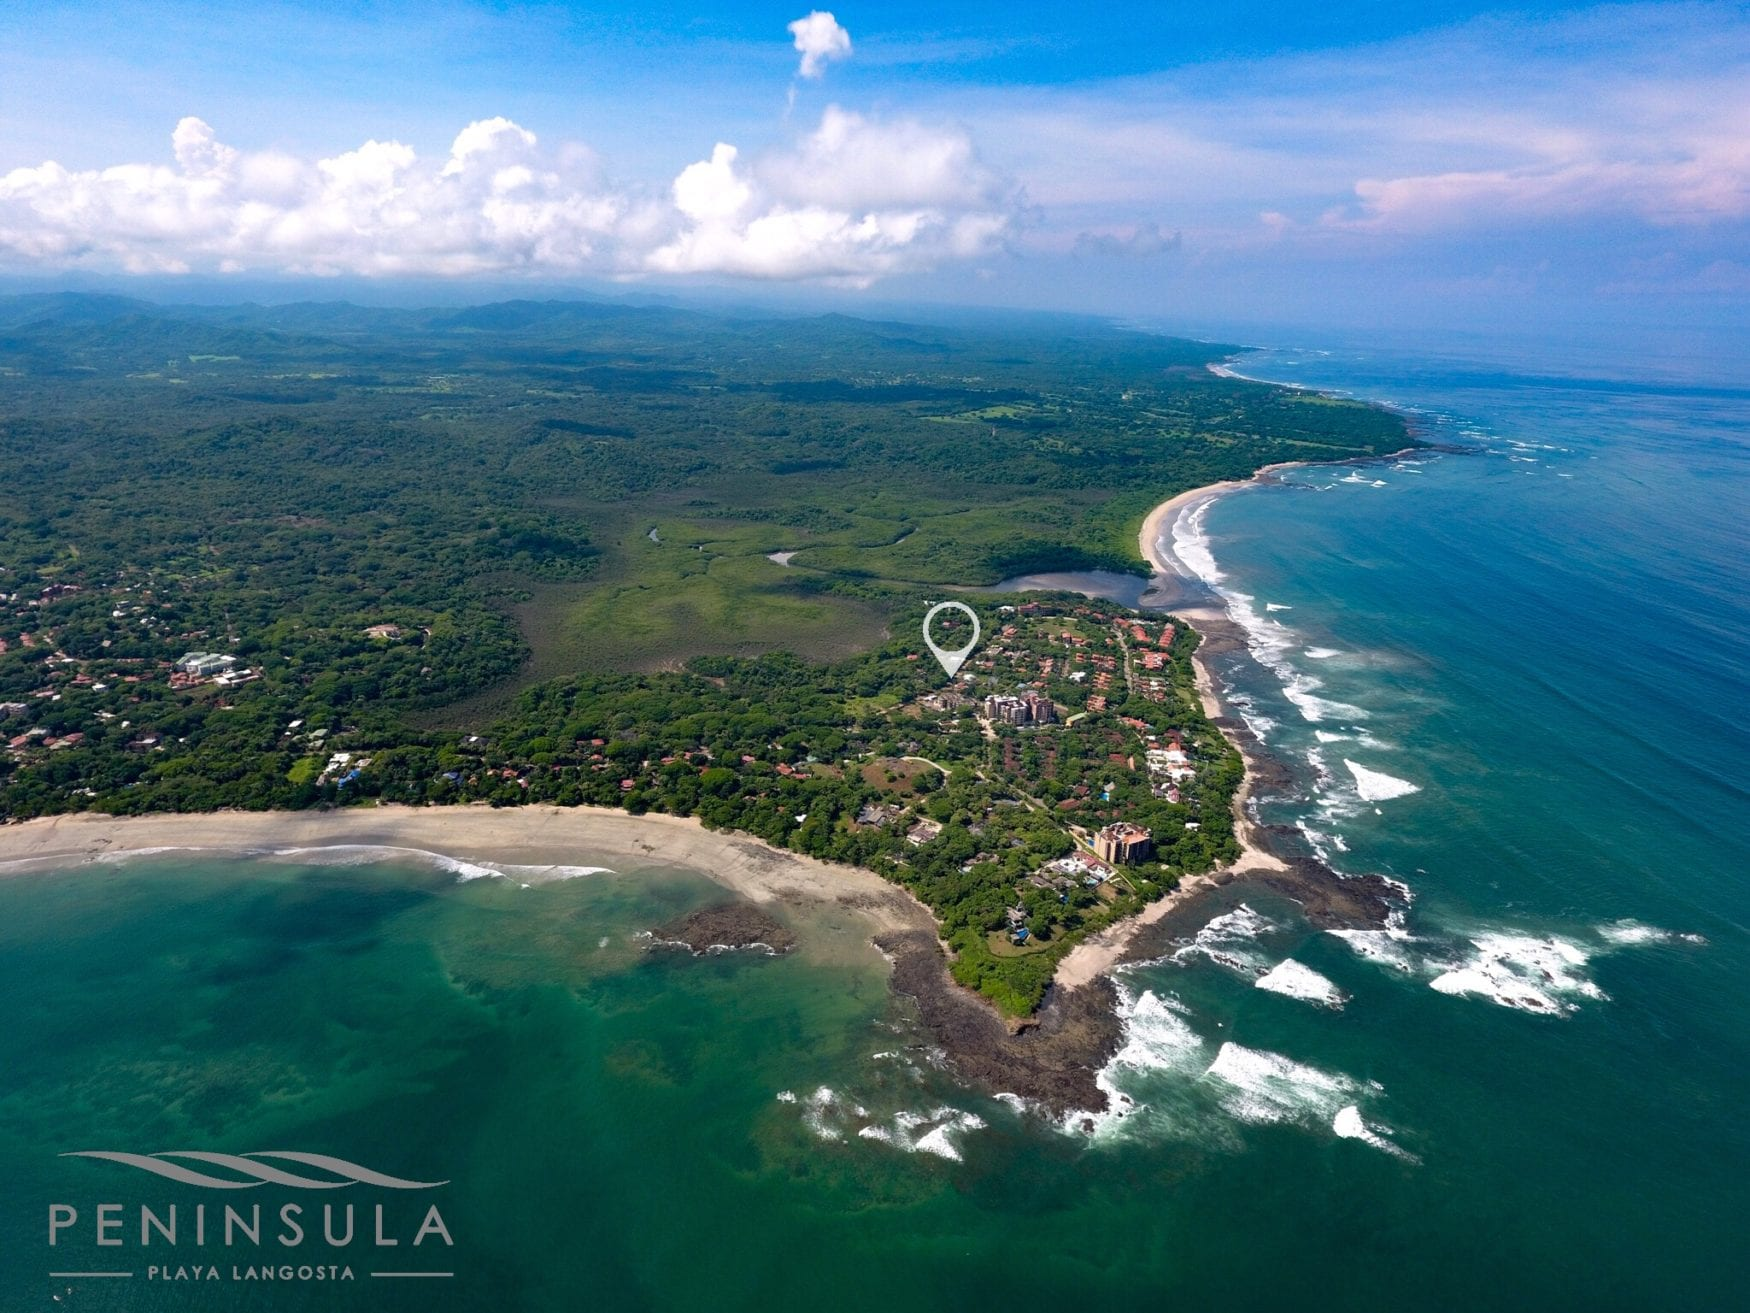 Peninsula from above